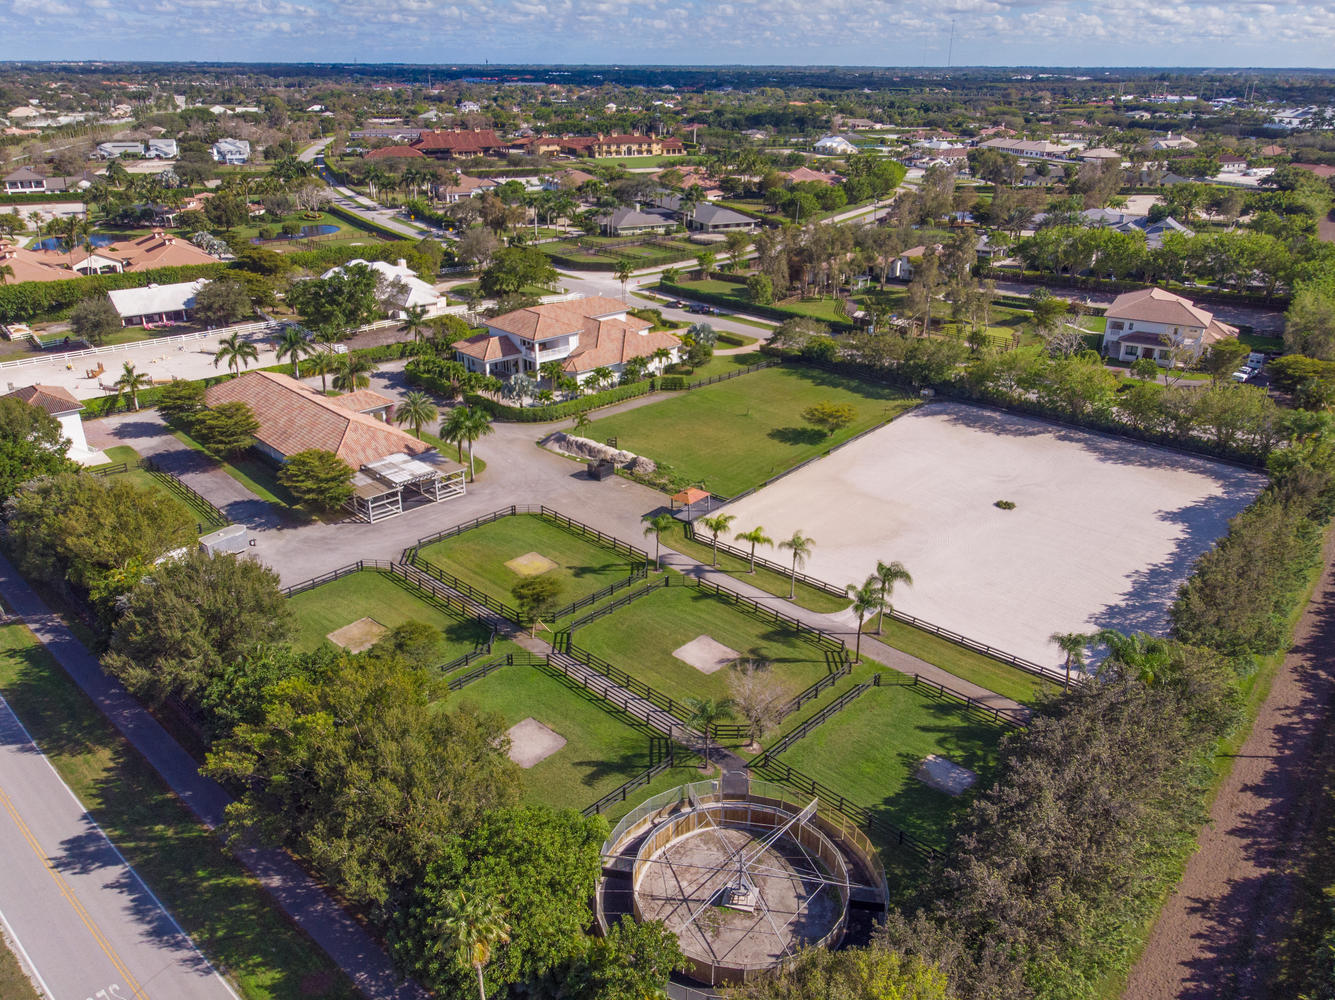 14471 Equestrian Way, Wellington, Florida 33414, 7 Bedrooms Bedrooms, ,7 BathroomsBathrooms,Single Family,For Sale,Equestrian,RX-10500861